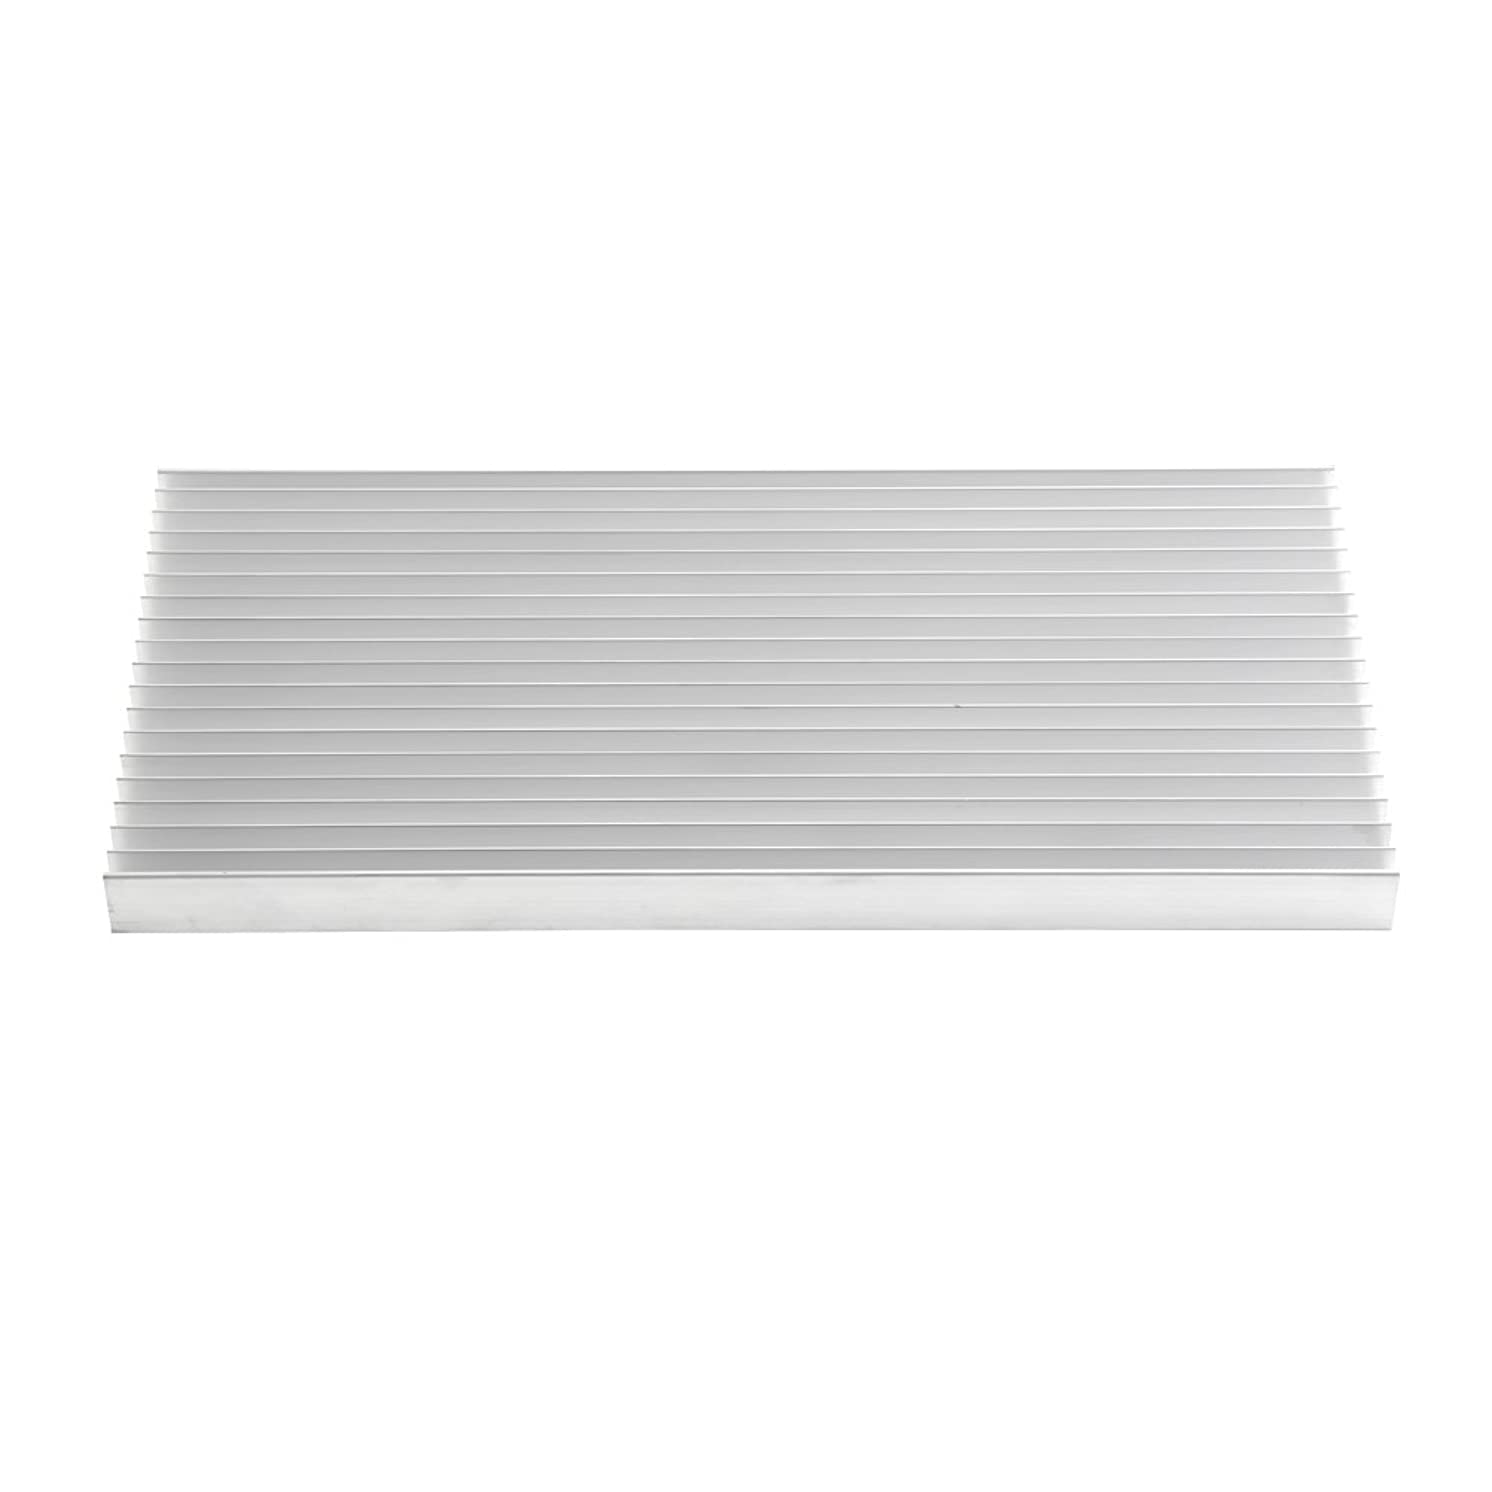 Aluminum Heat Sink Cooling Heatsink with 19pcs Fins for High Power Household LED Light Fish Tank LED Devices